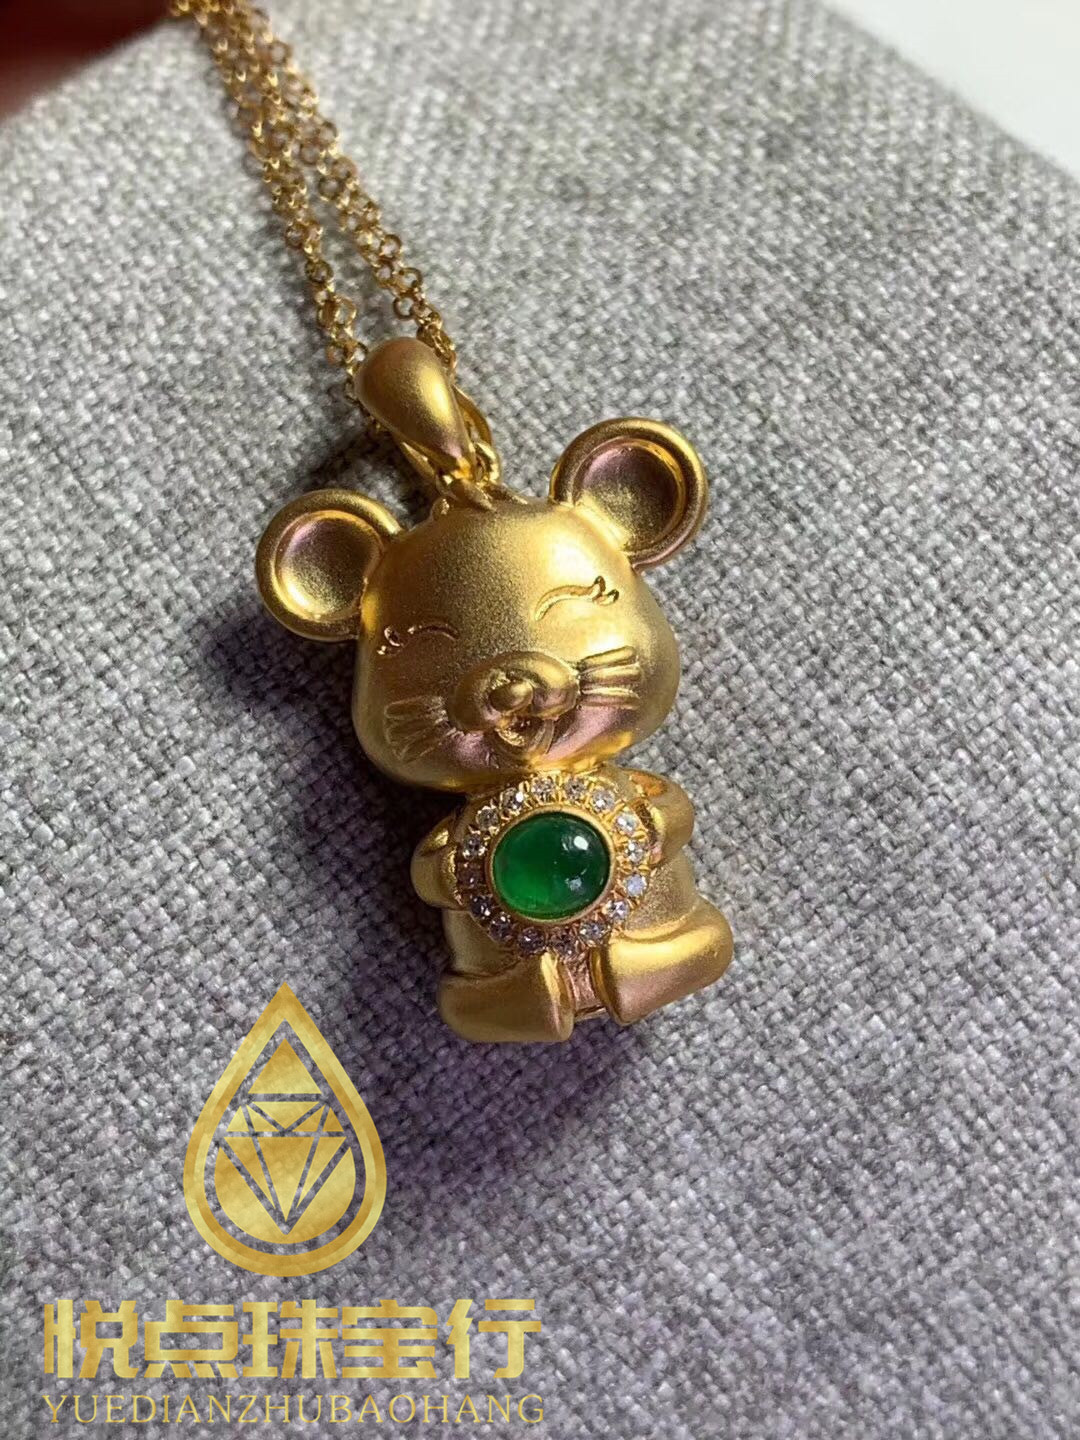 Yuedian jewelry, 18K golden mouse, good luck, mouse necklace, pendant jewelry, jadeite inlay, customization